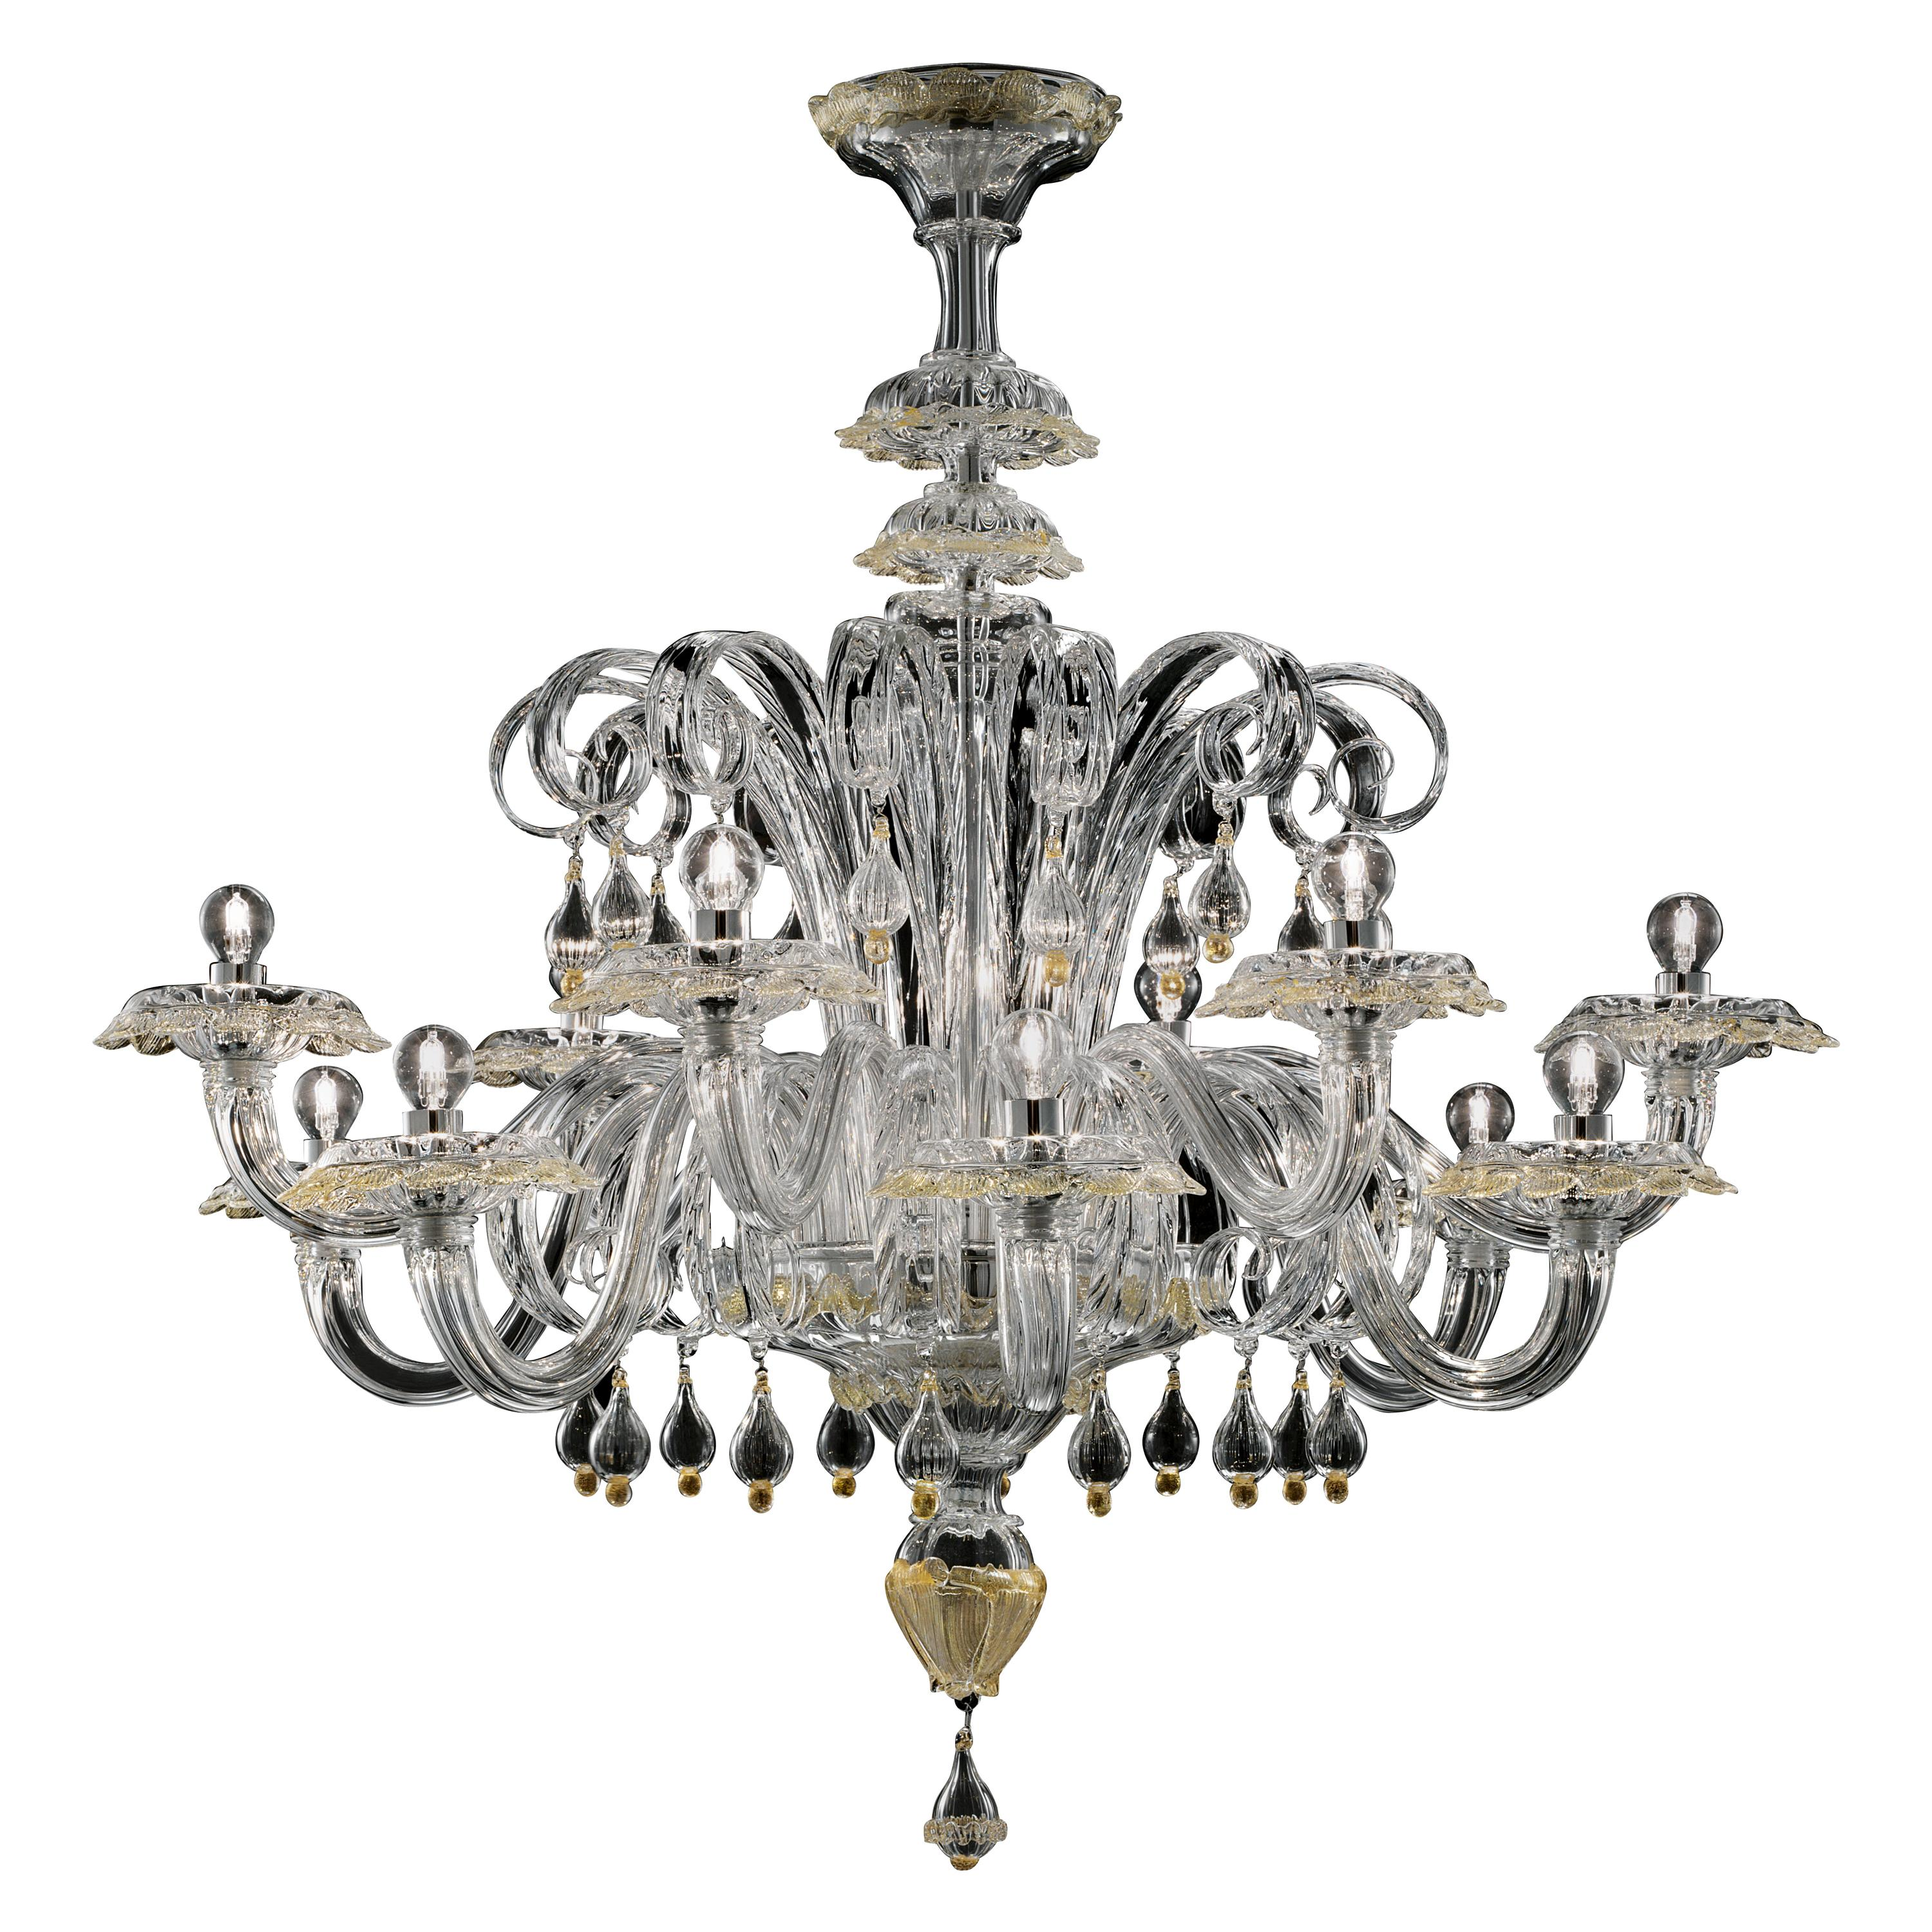 Rabat 4513 12 Chandelier in Glass, by Barovier & Toso